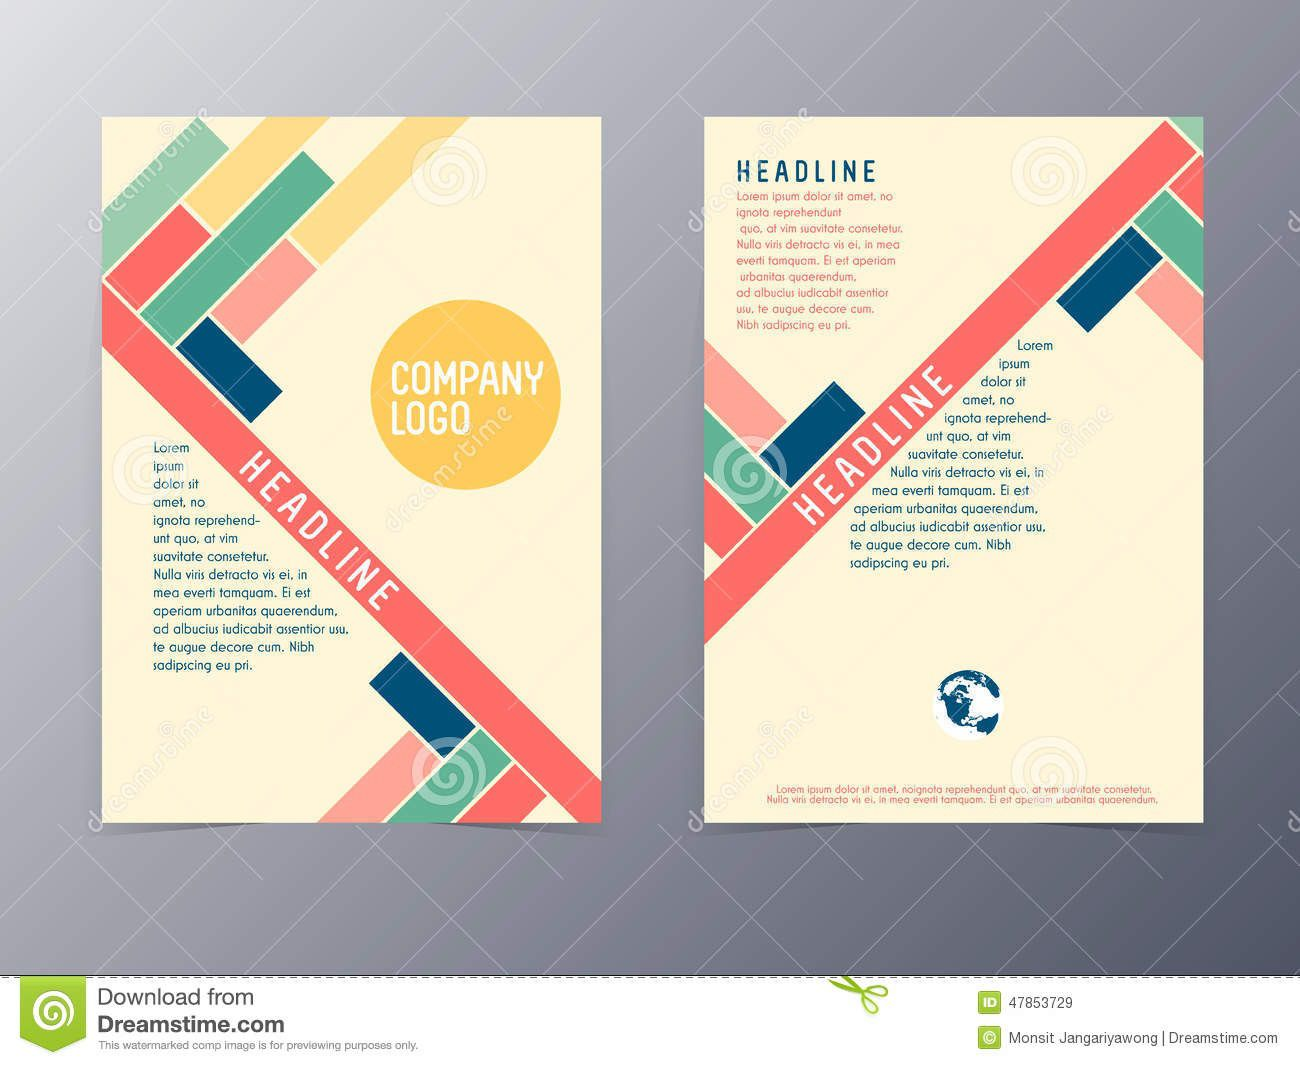 003 Archaicawful In Design Flyer Template Sample  Templates Indesign Free For Mac EventFull